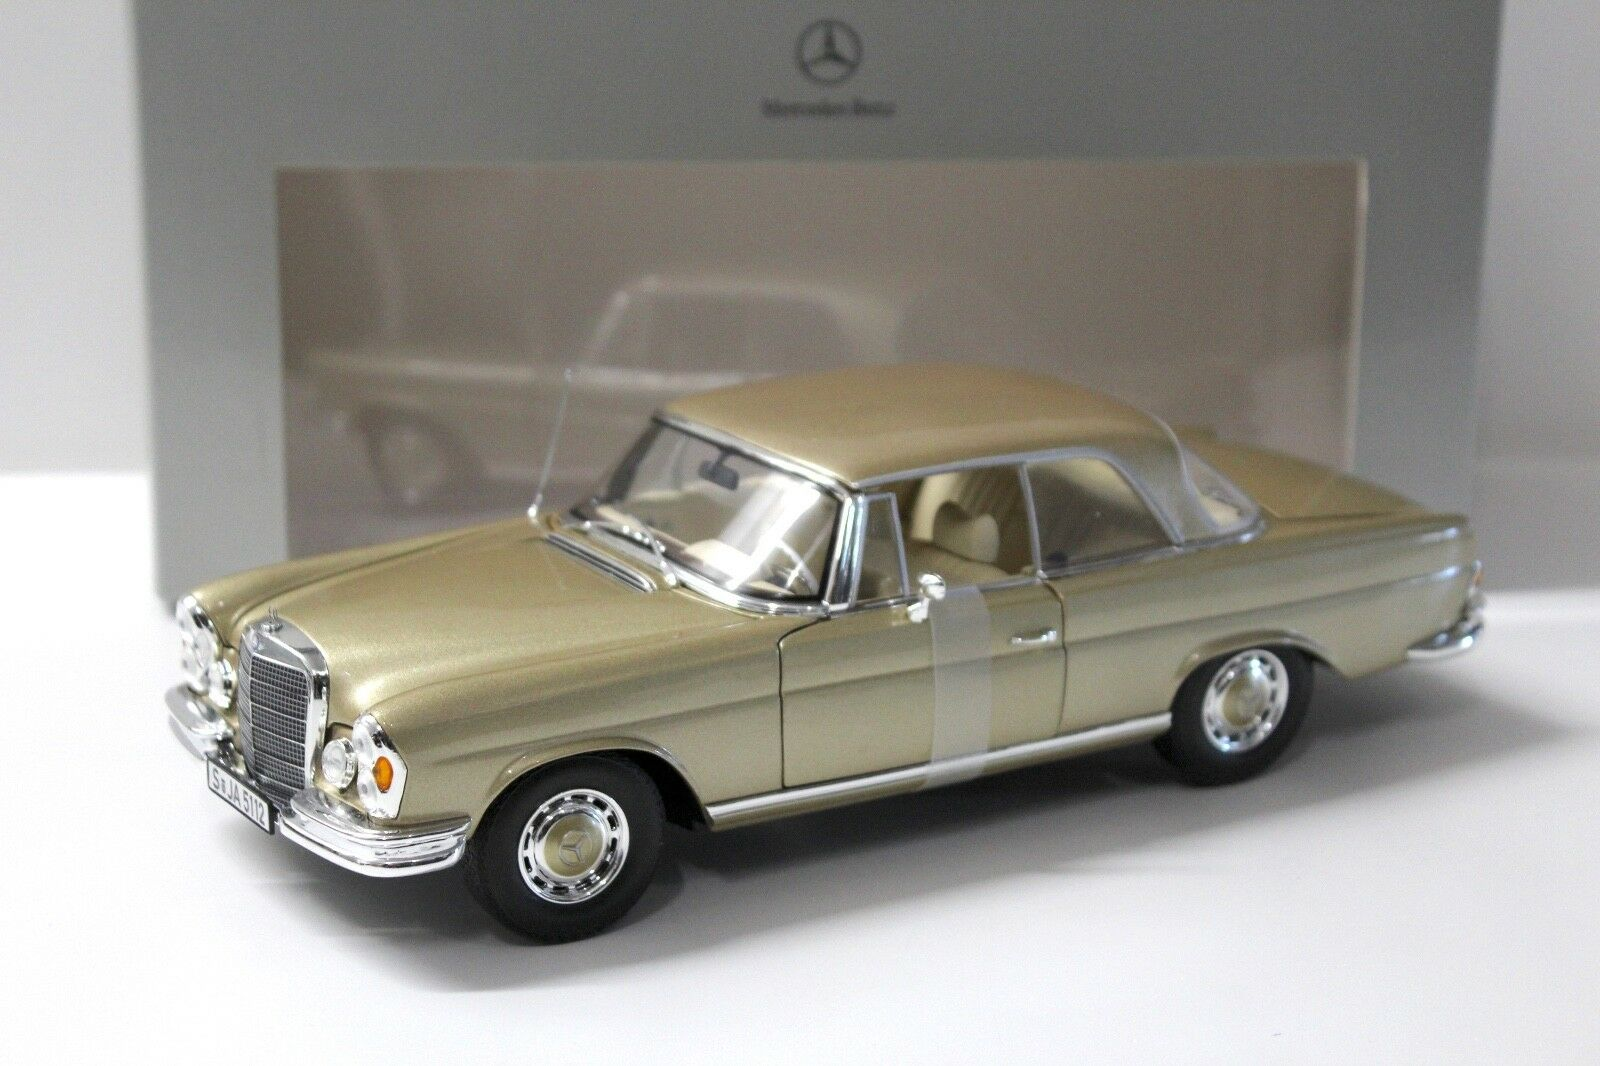 1:18 NOREV MERCEDES 280 se COUPE ORO spacciatori NEW in Premium-MODELCARS